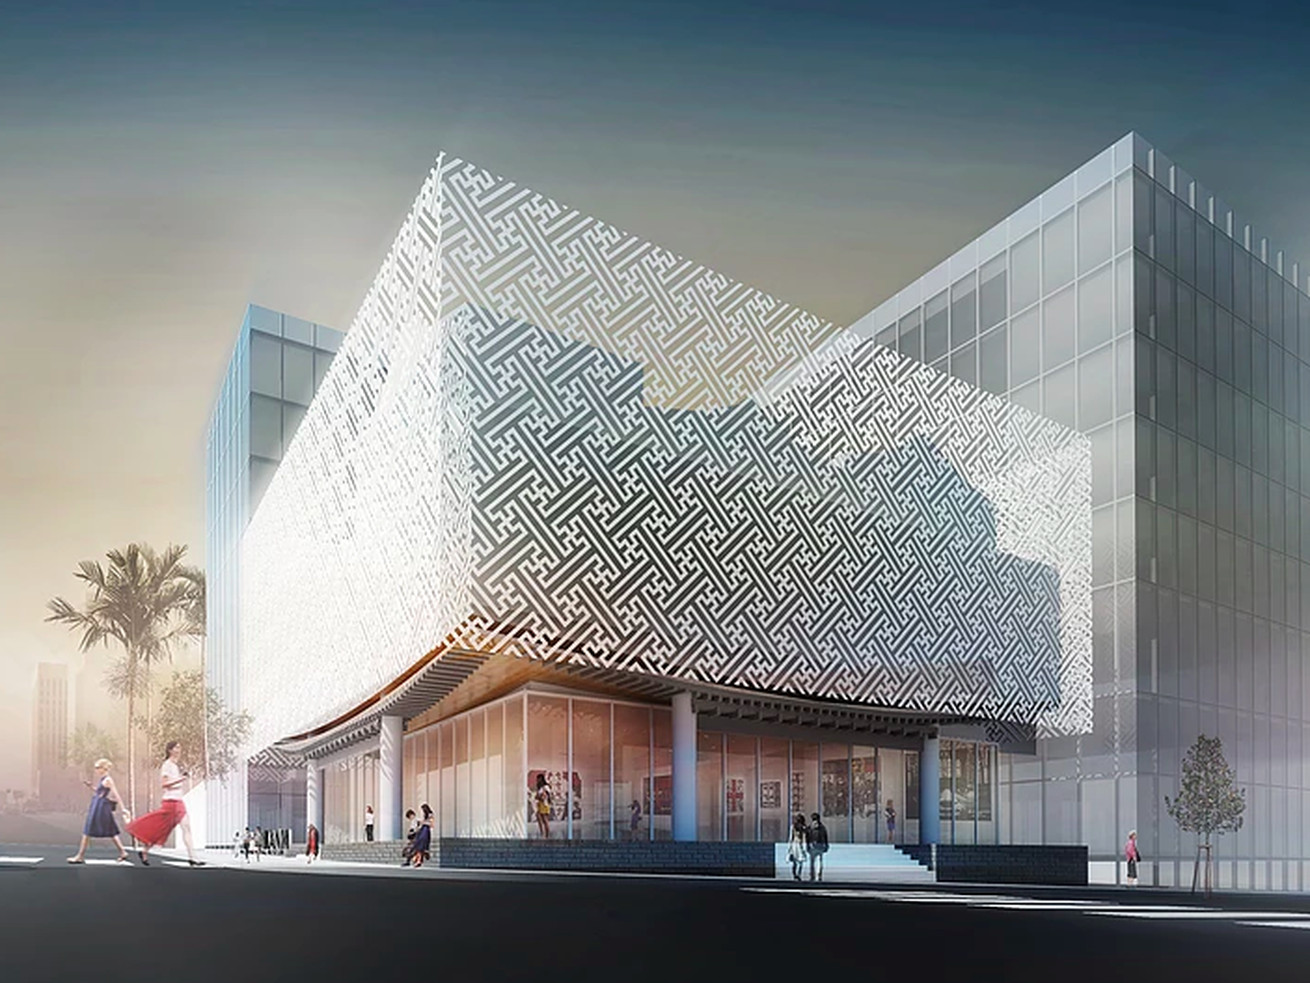 A 2017 rendering of the museum.